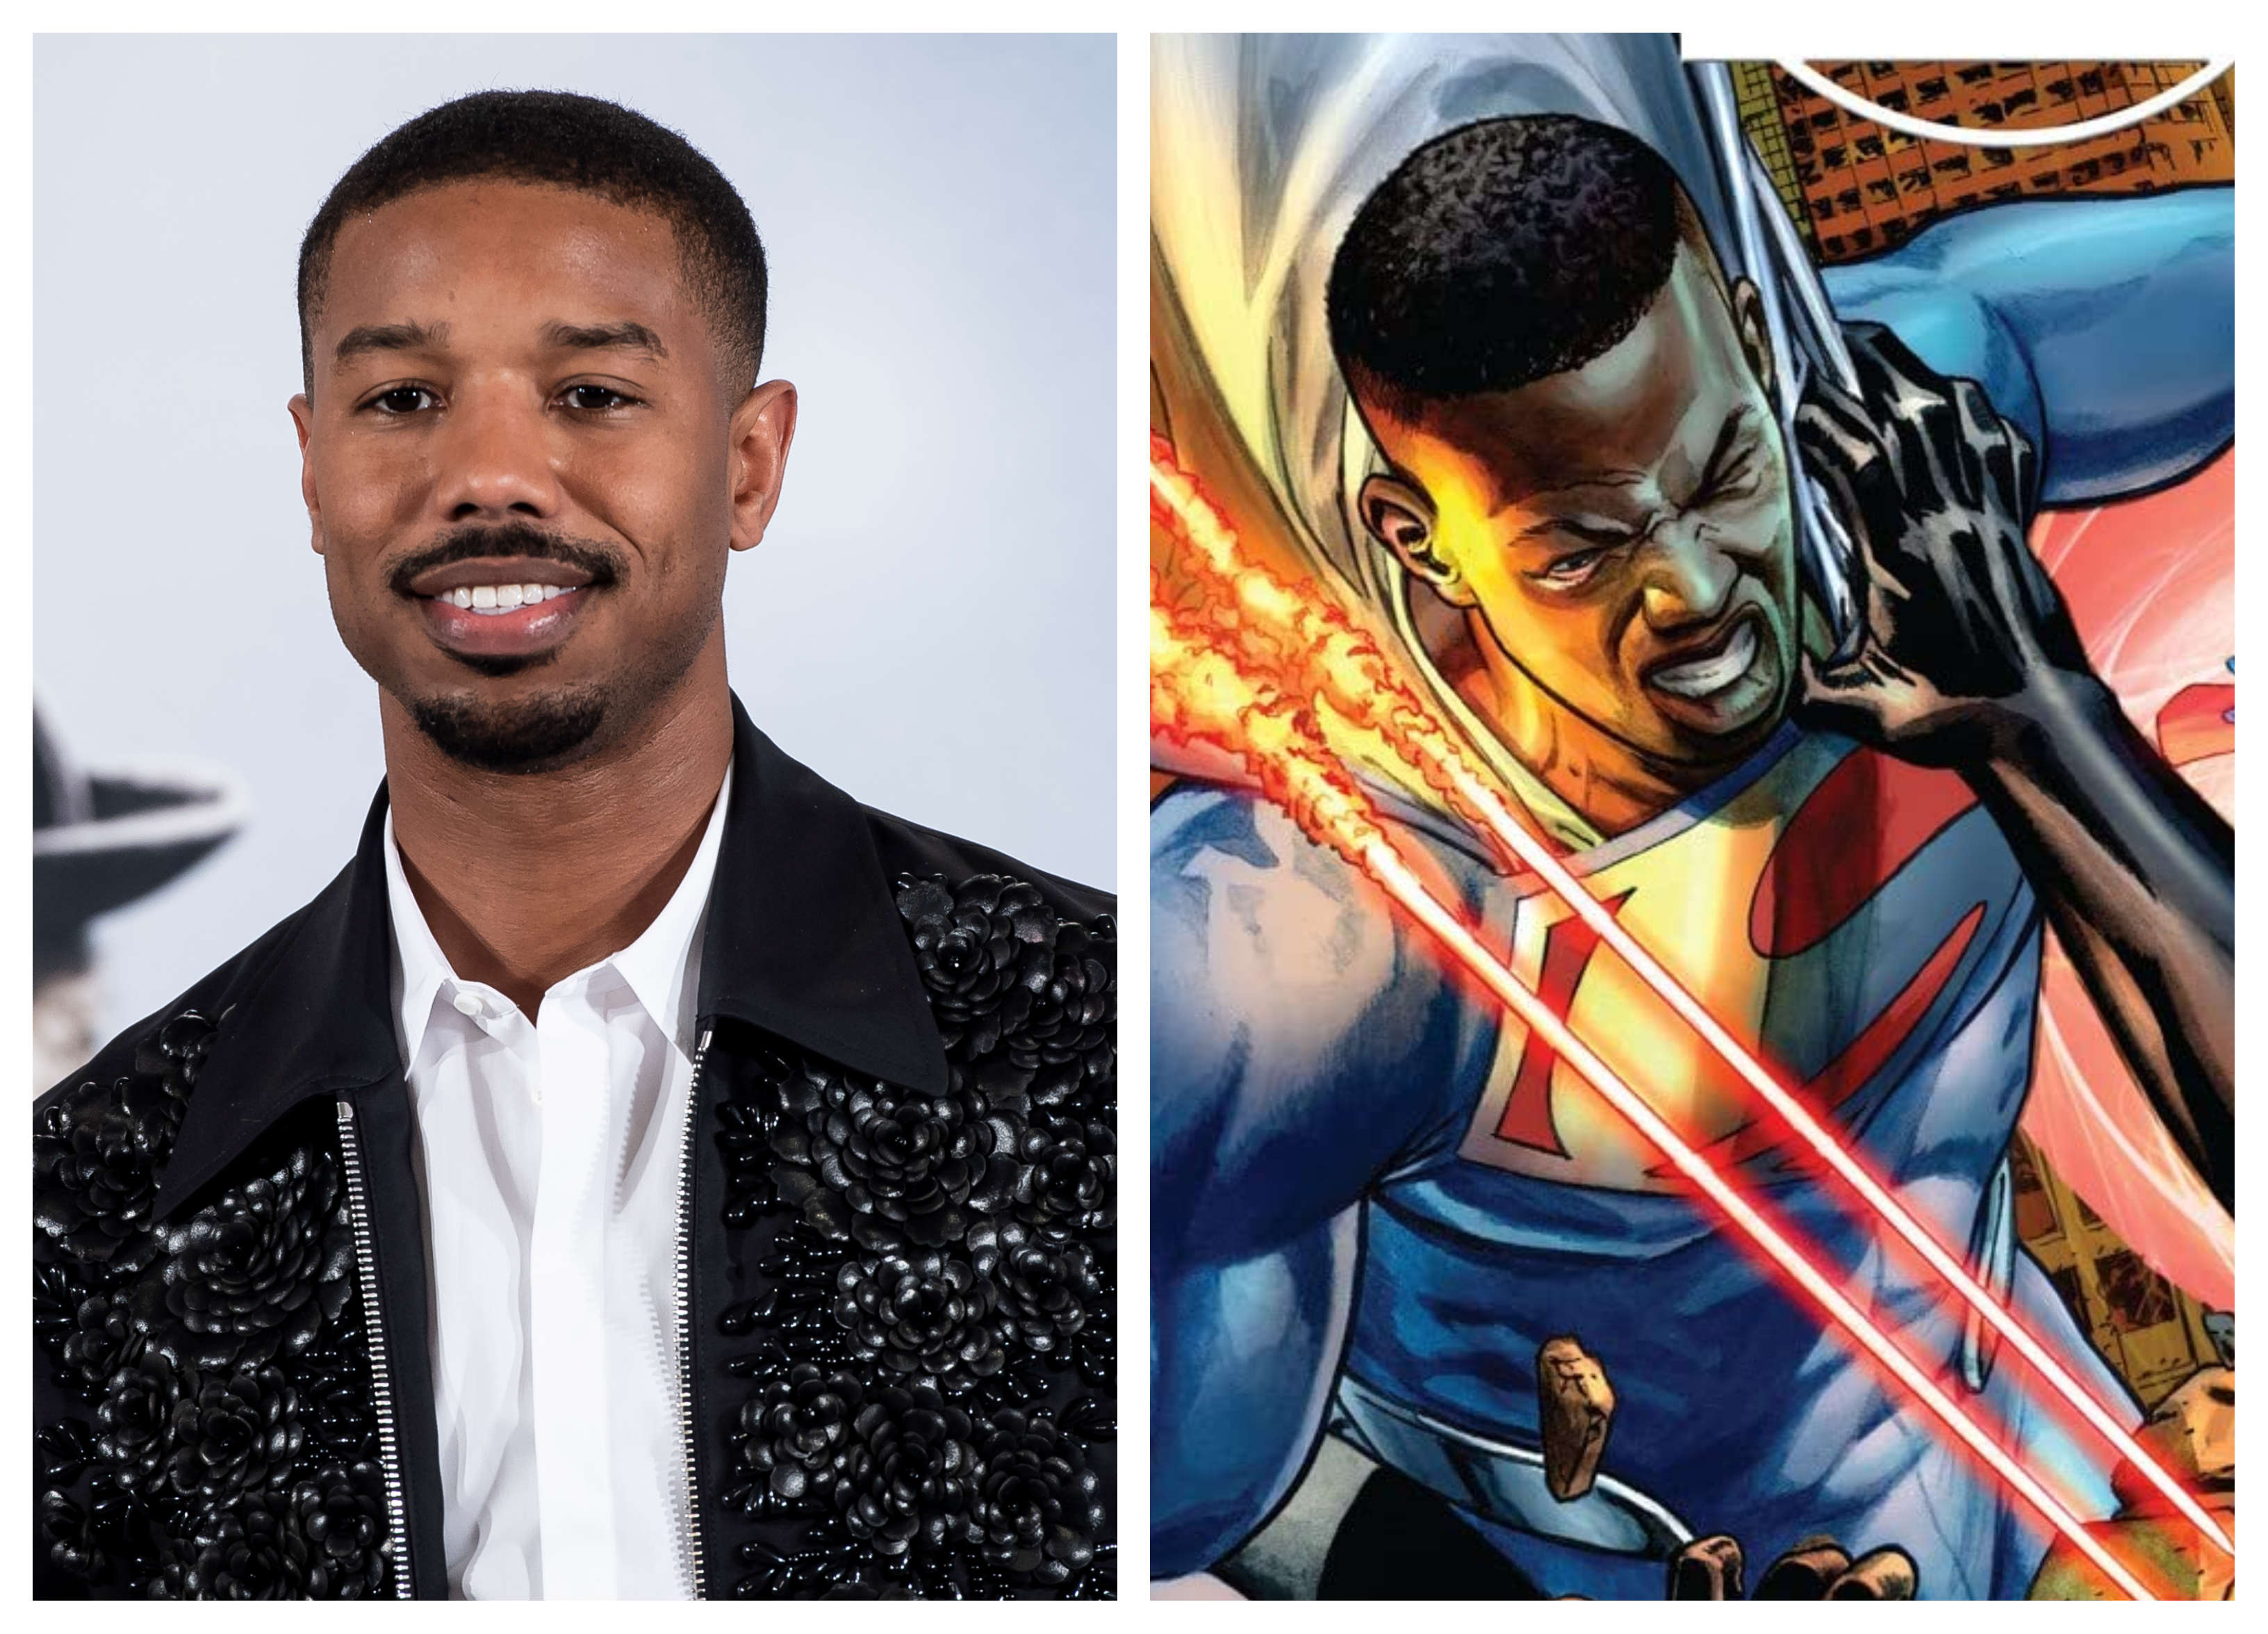 Michael B. Jordan developing 'Superman' HBO Max limited series about DC's Val-Zod of Earth 2